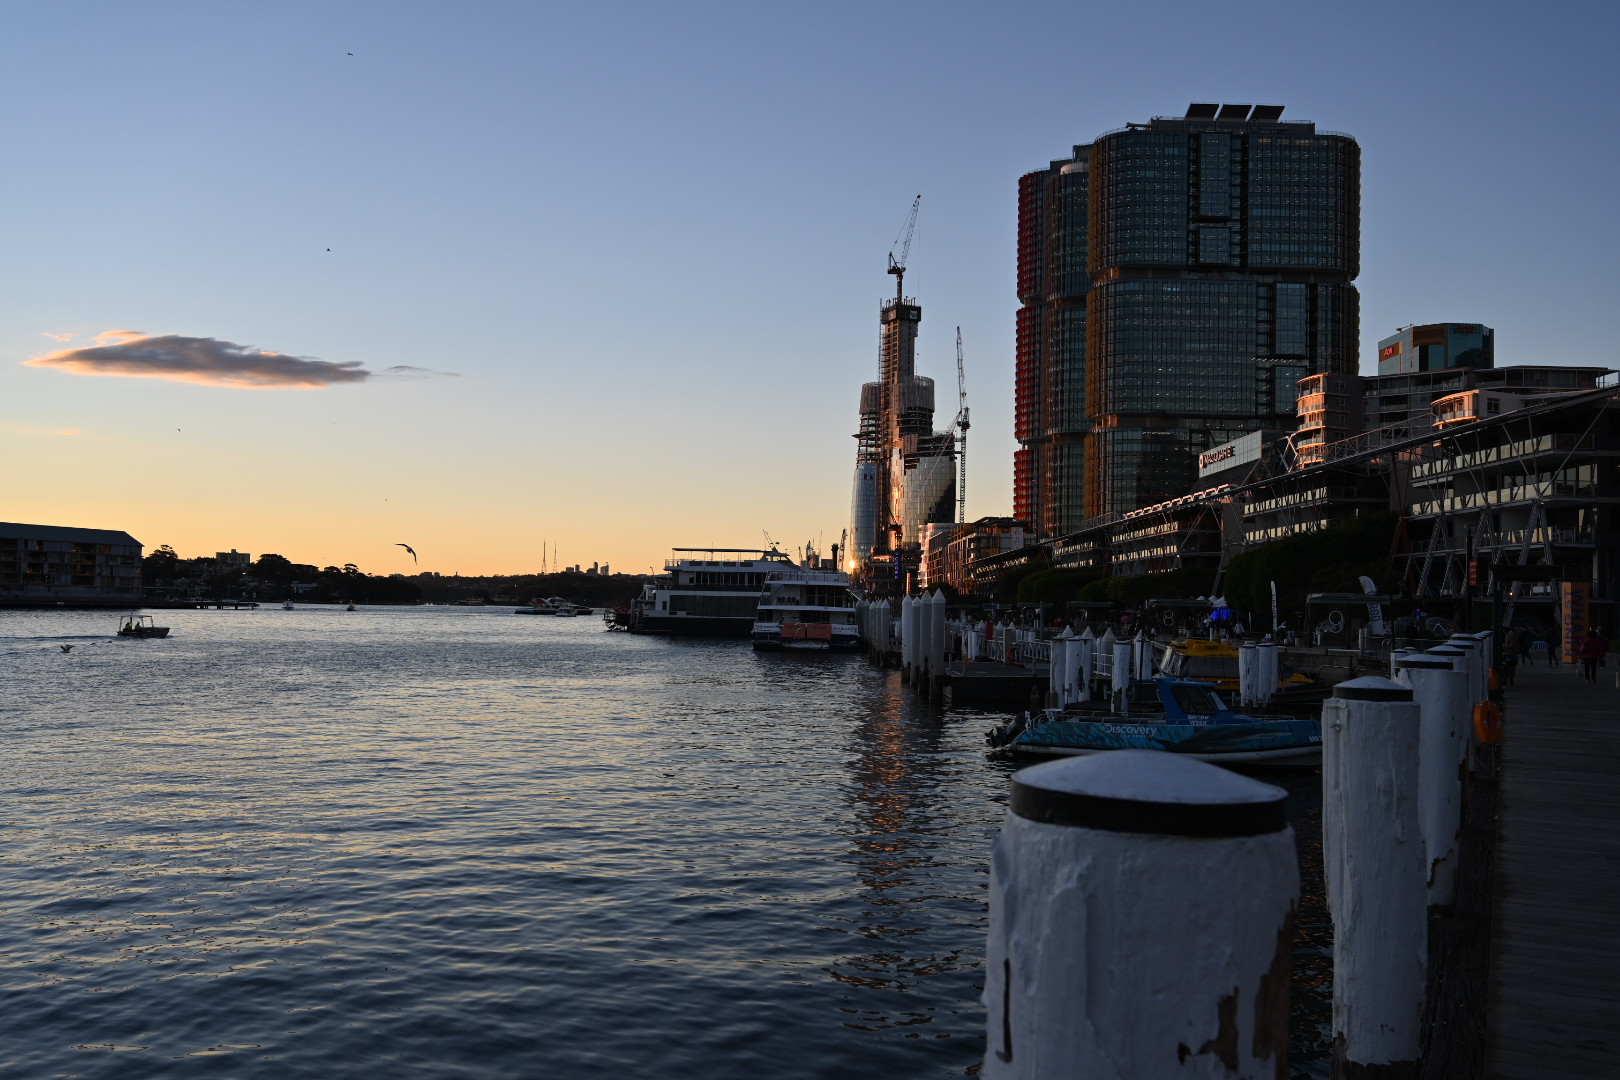 Darling Harbour in the afternoon